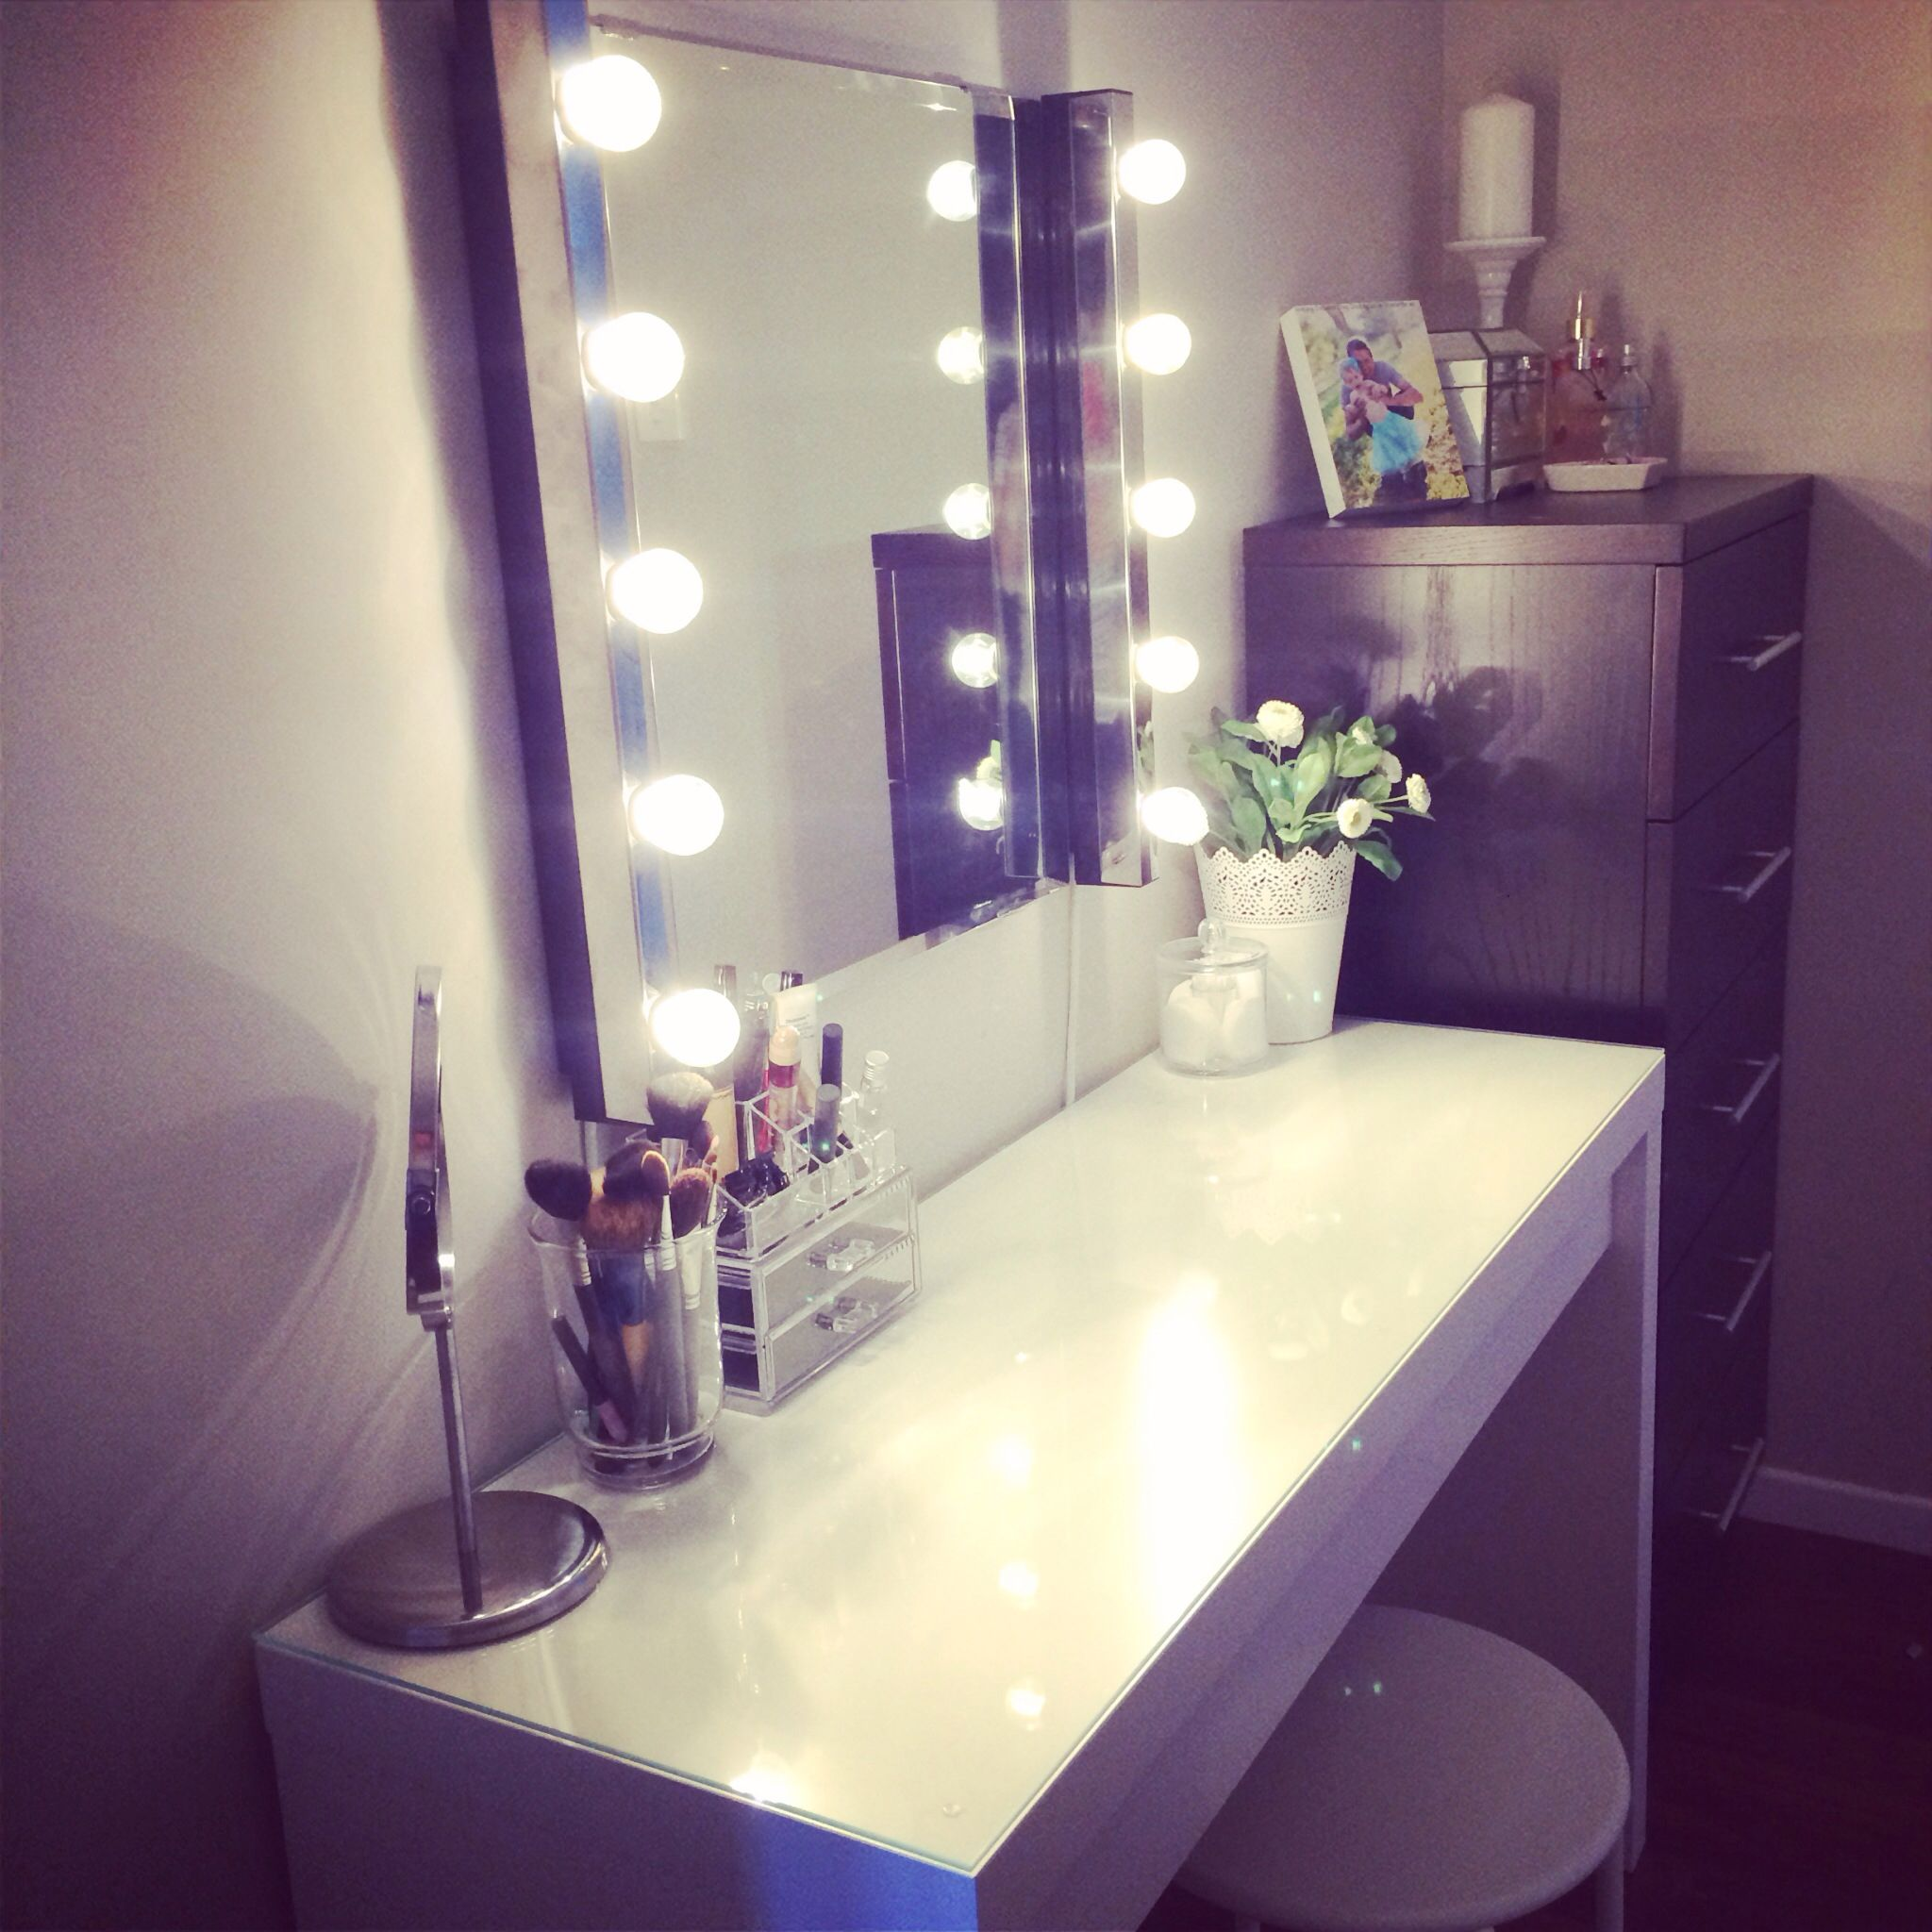 Ikea Malm Vanity Mirror Lights And Stool Also From Ikea Make - Making a vanity mirror